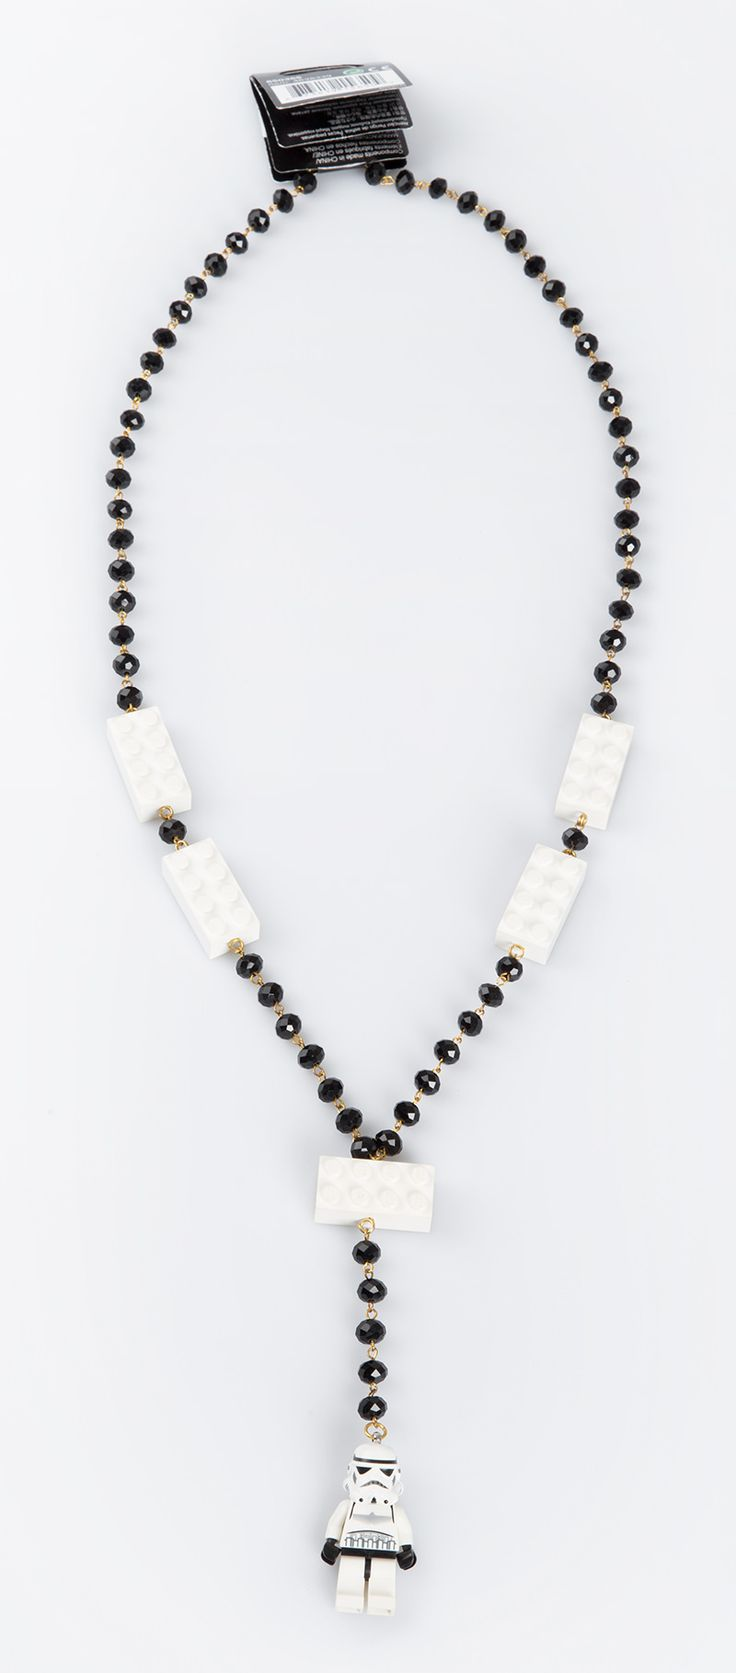 Unique necklace with combination of black and white beads, white Lego blocks and Storm Trooper Lego as a main detail in this necklace. http://www.zocko.com/z/JJylr